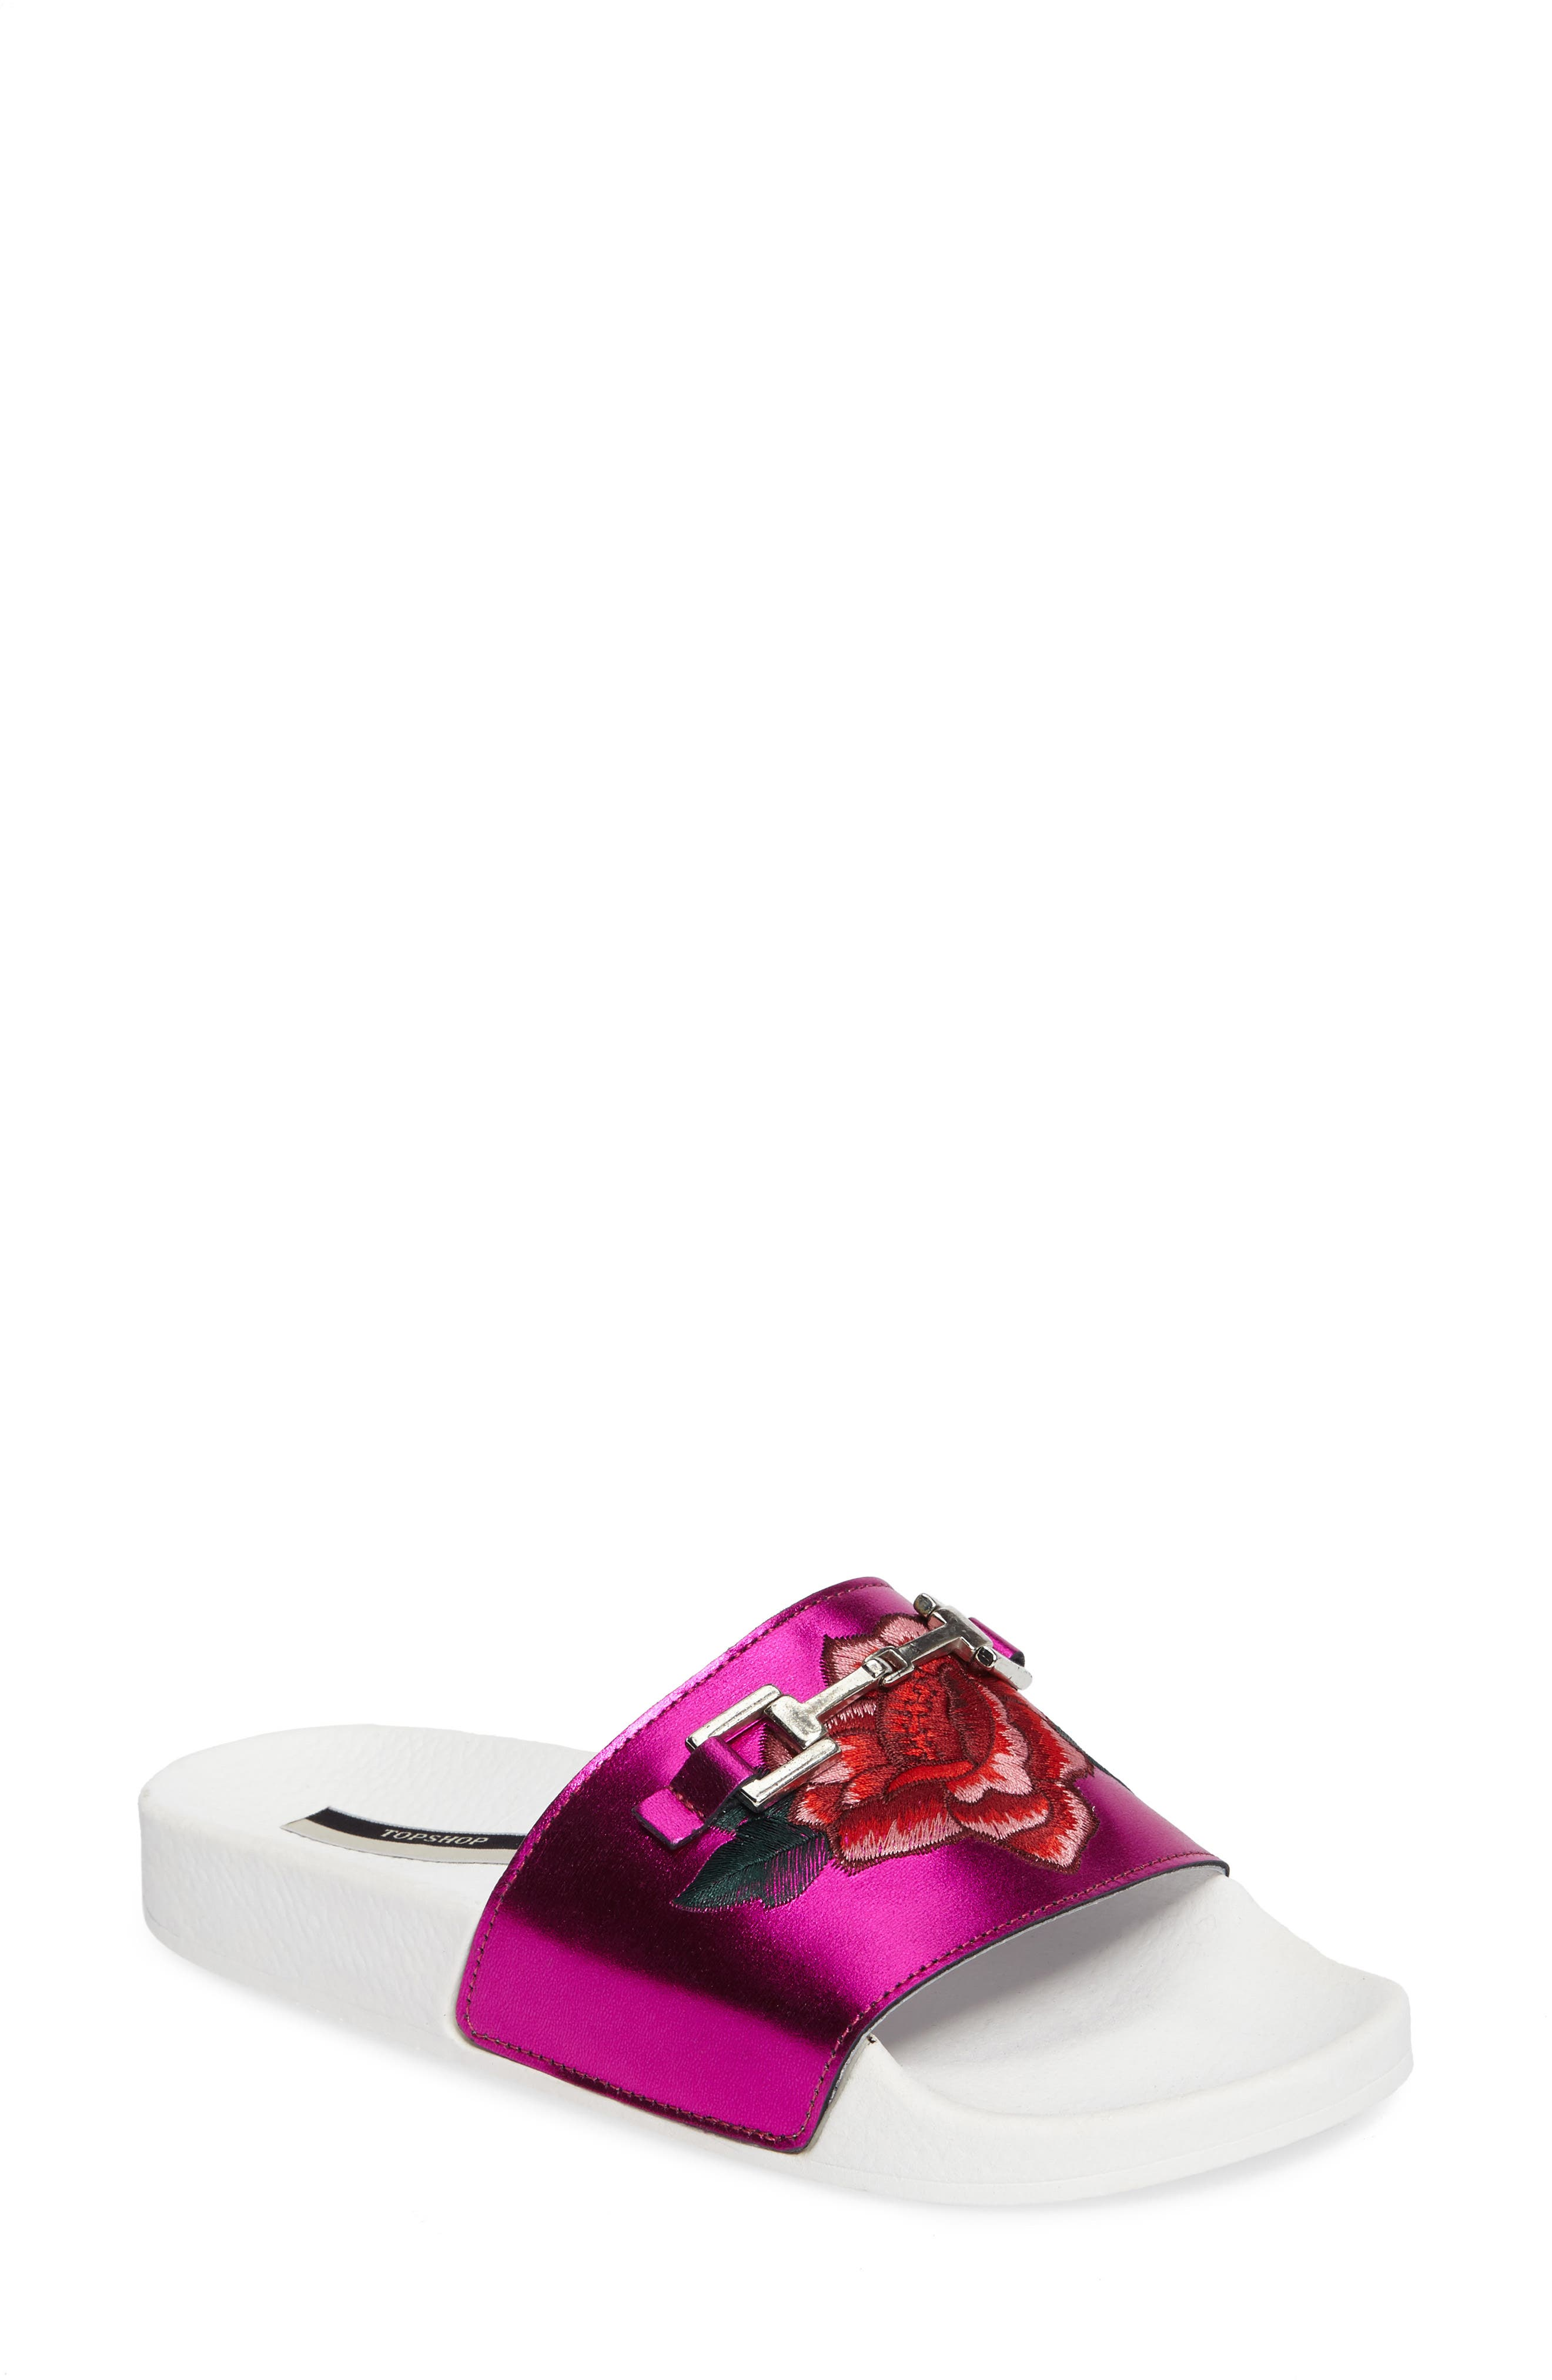 Alternate Image 1 Selected - Topshop Fierce Embroidered Slide Sandal (Women)